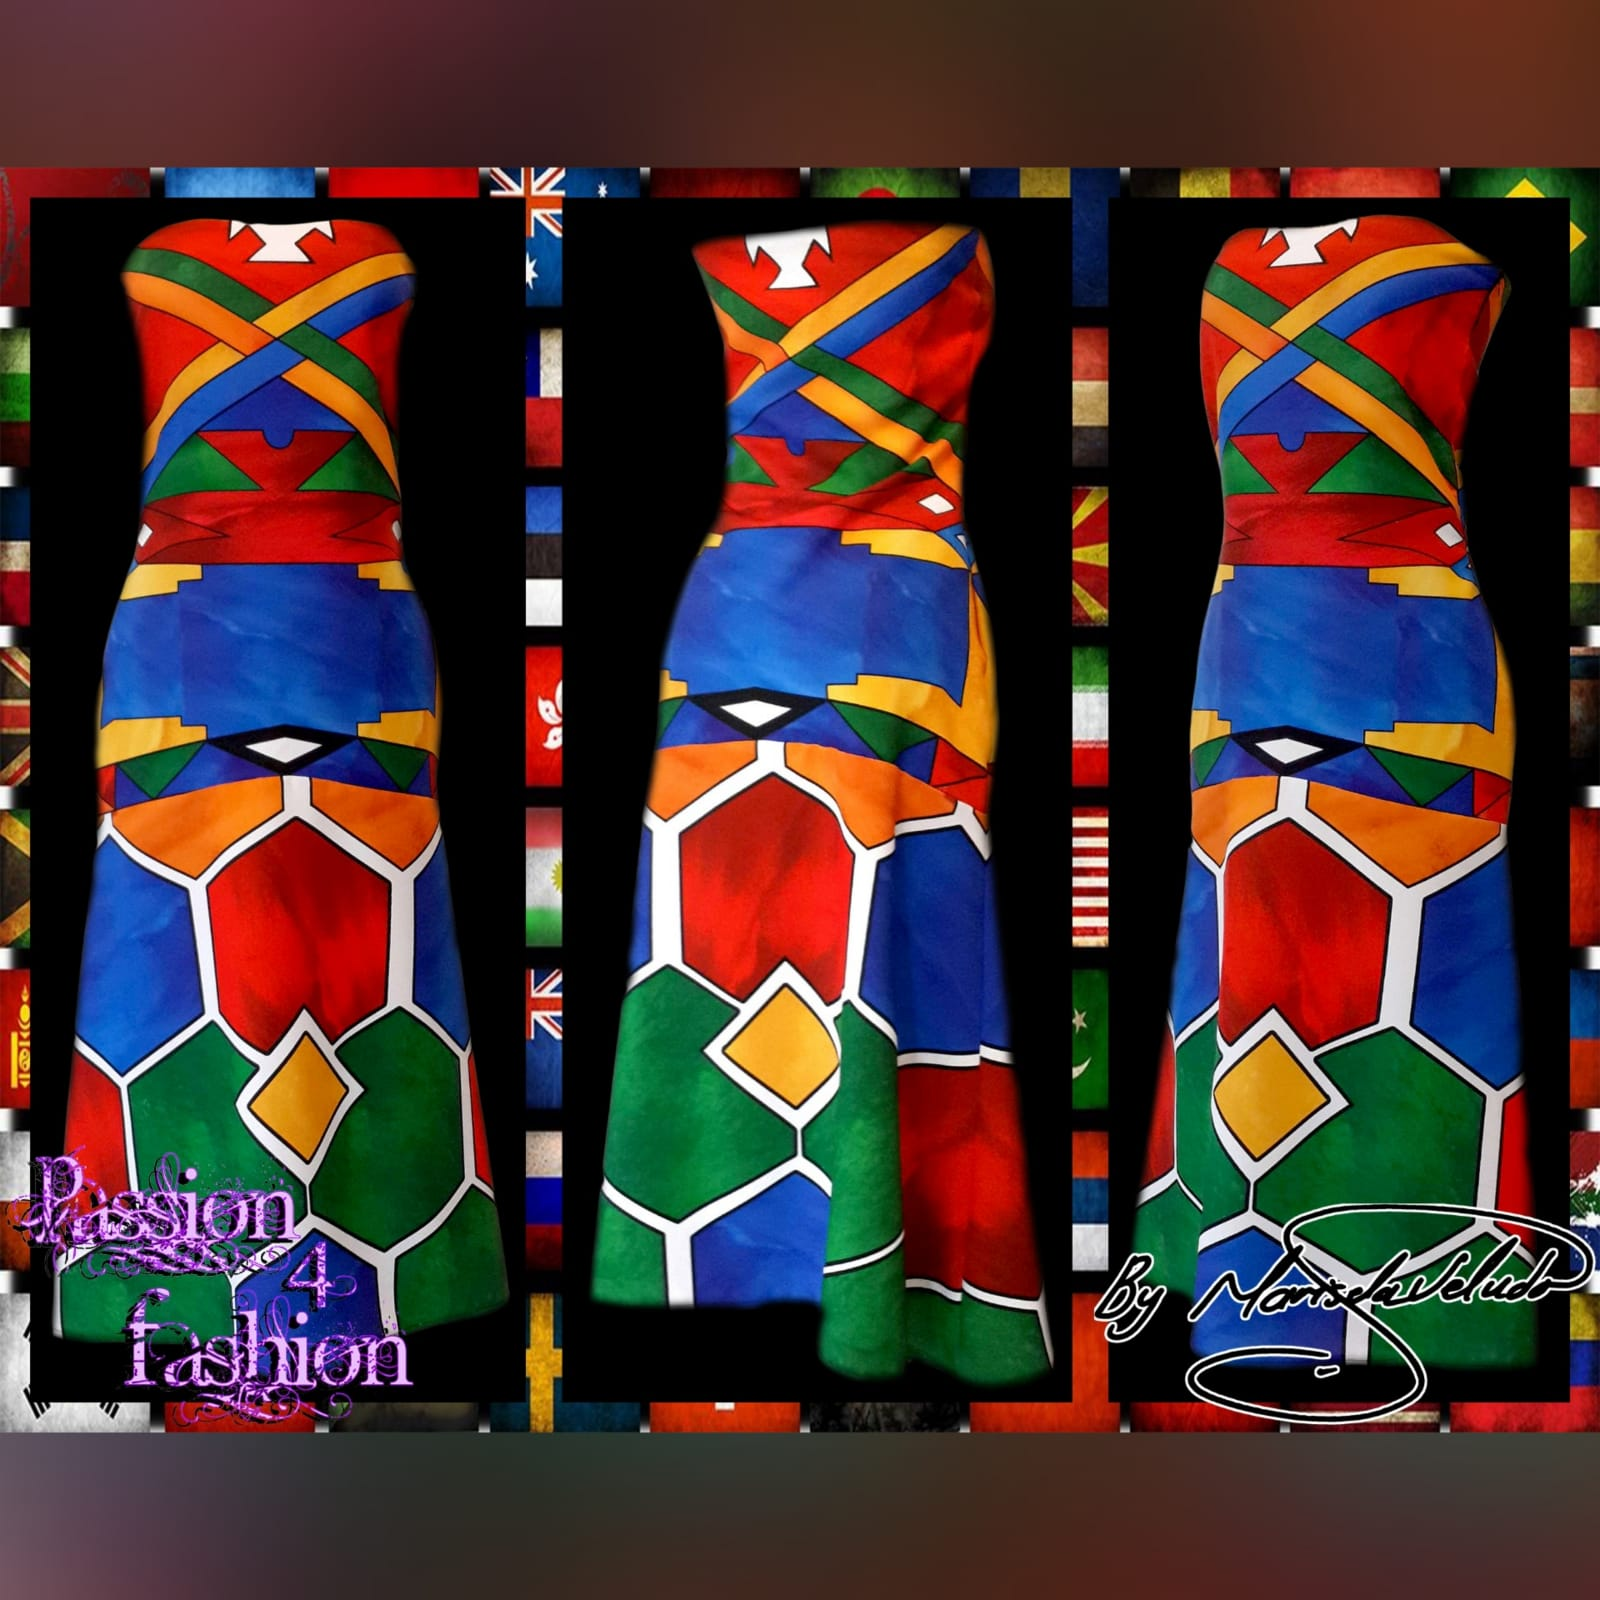 Ndebele traditional wedding dress 3 ndebele traditional wedding dress. Boob tube traditional wedding dress and fitted till the hips and flowy.